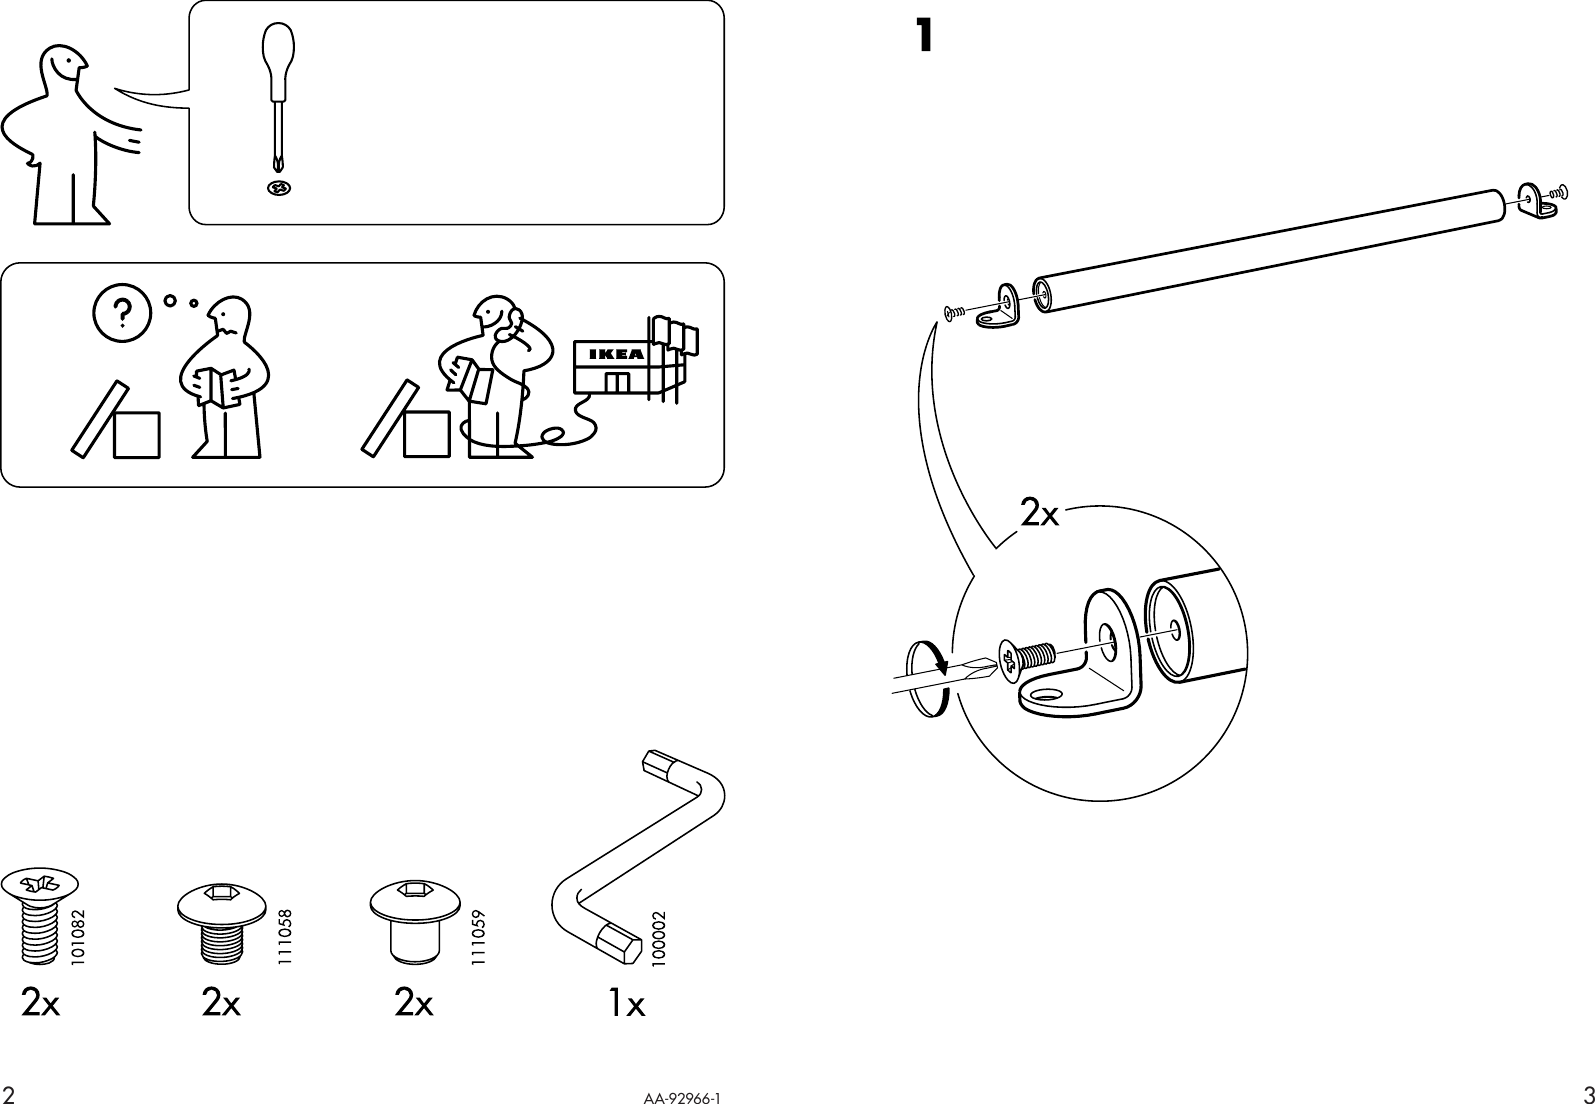 ikea assembly instructions for hasselvika